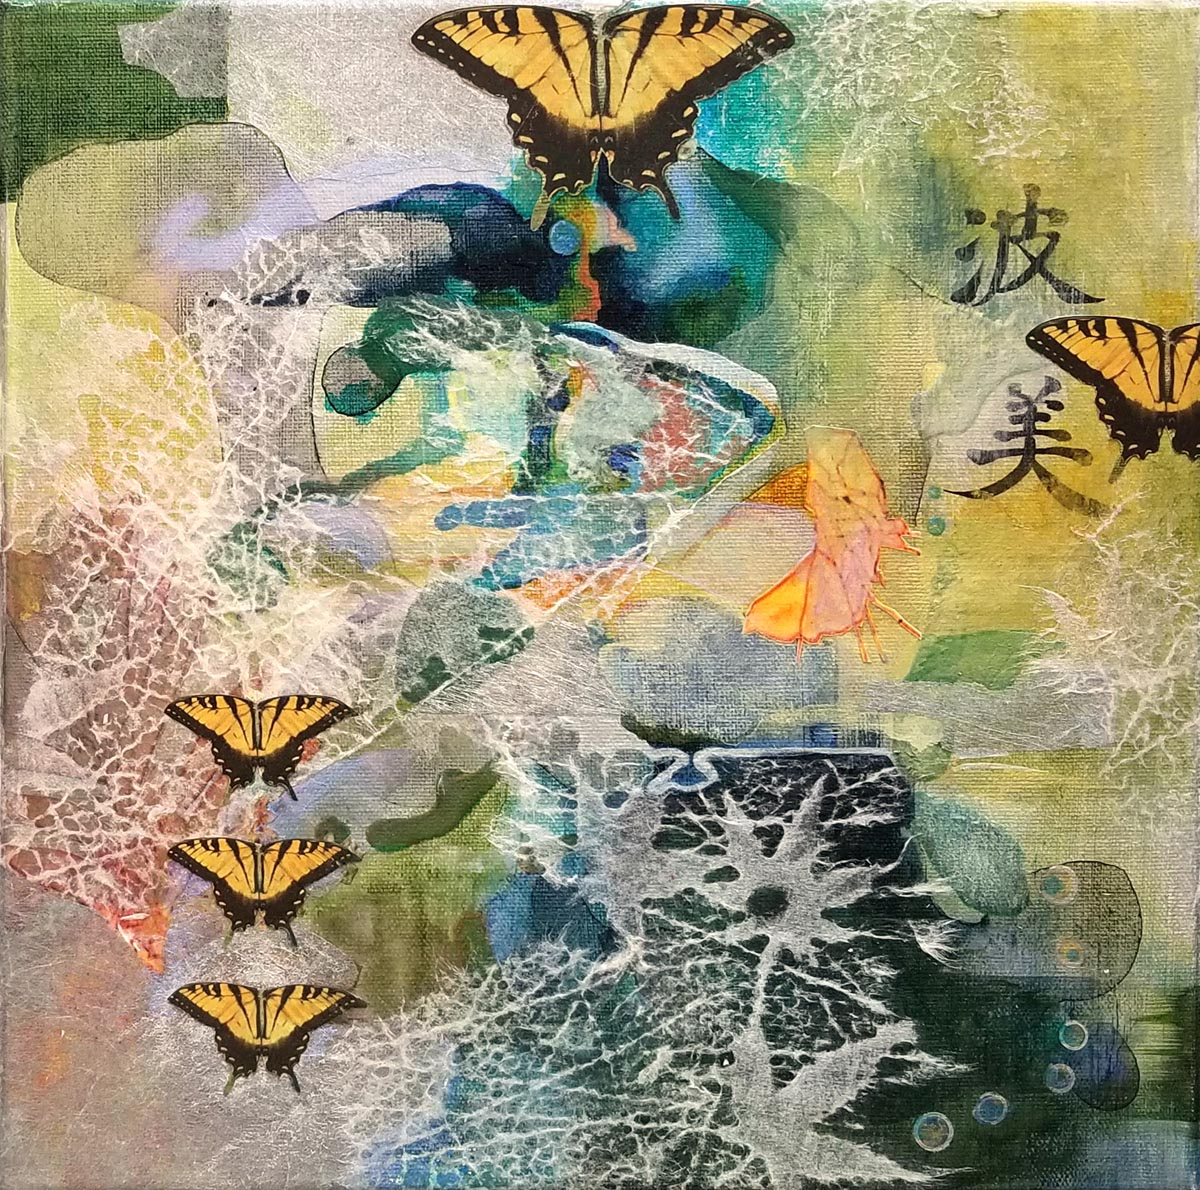 Swallowtails in Formation | Bobbi Kilty | Fine Art